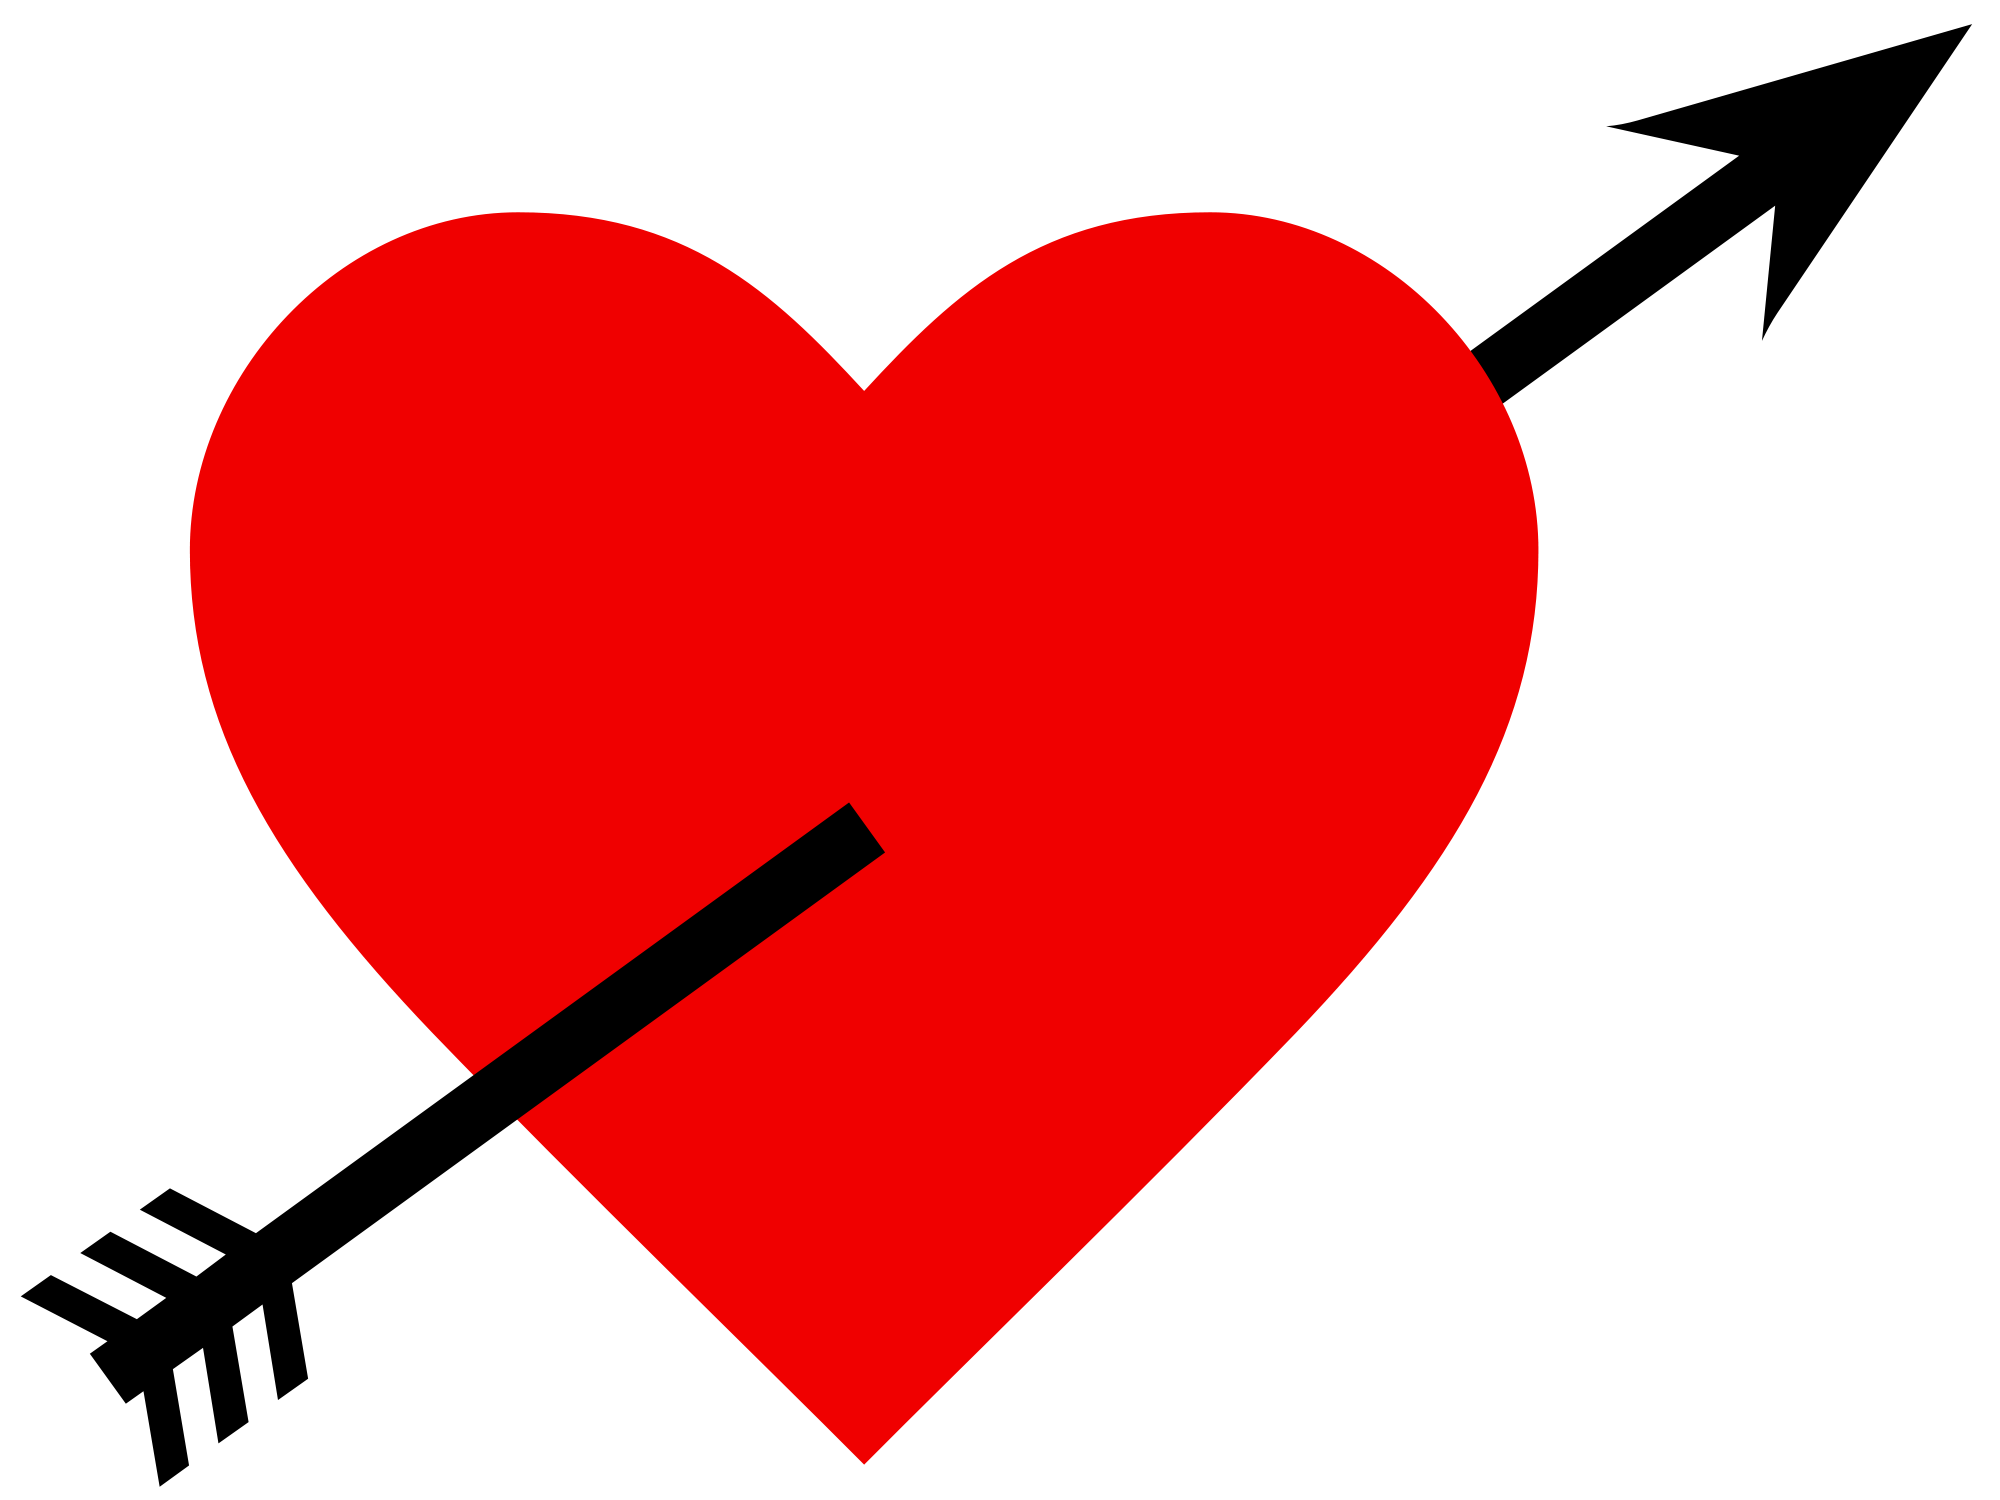 Image pngpix . Heart and arrow png image black and white download